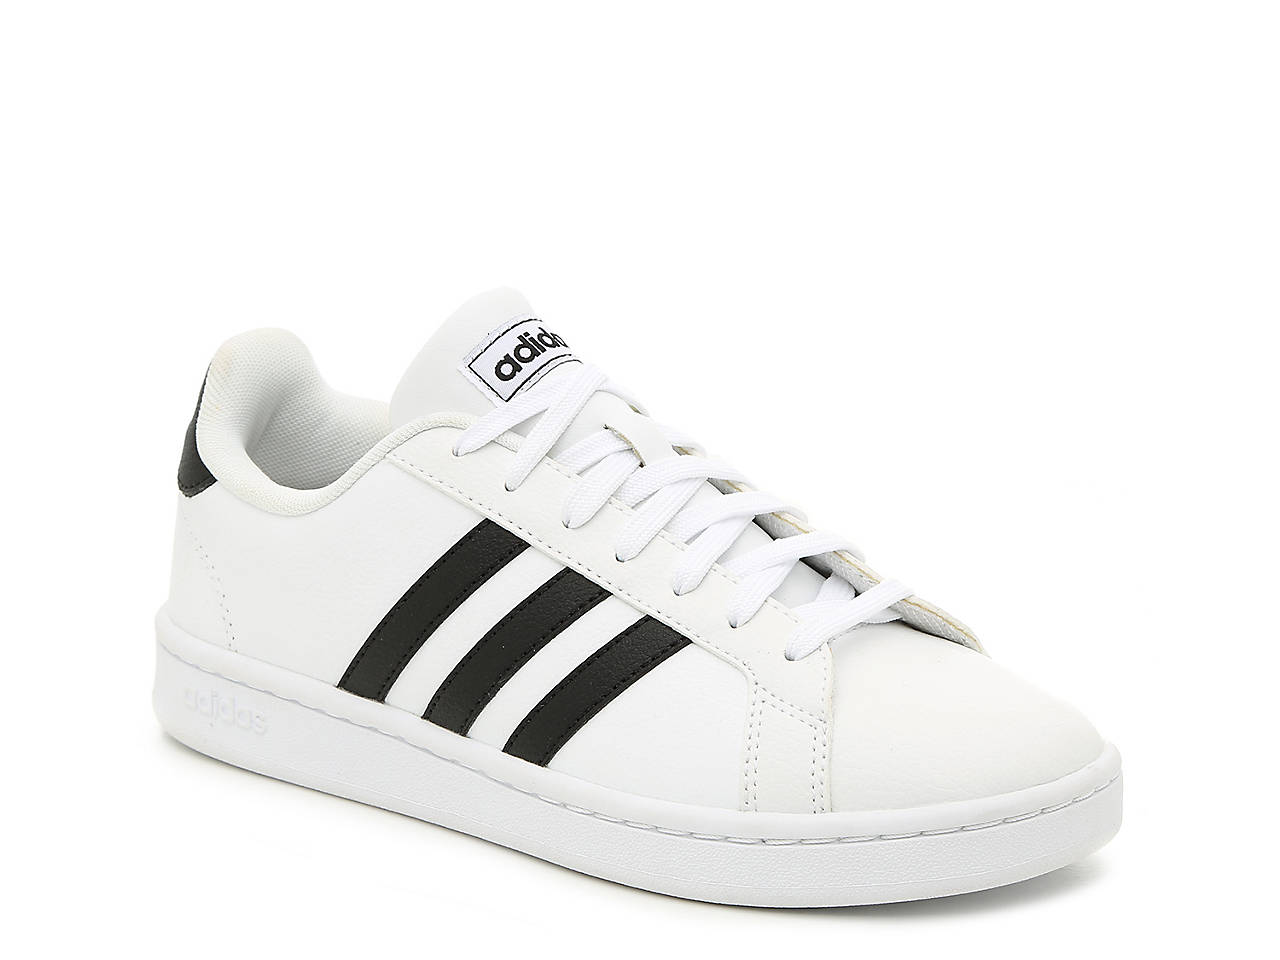 adidas Grand Court Sneaker - Women s Women s Shoes  c56a6bd40